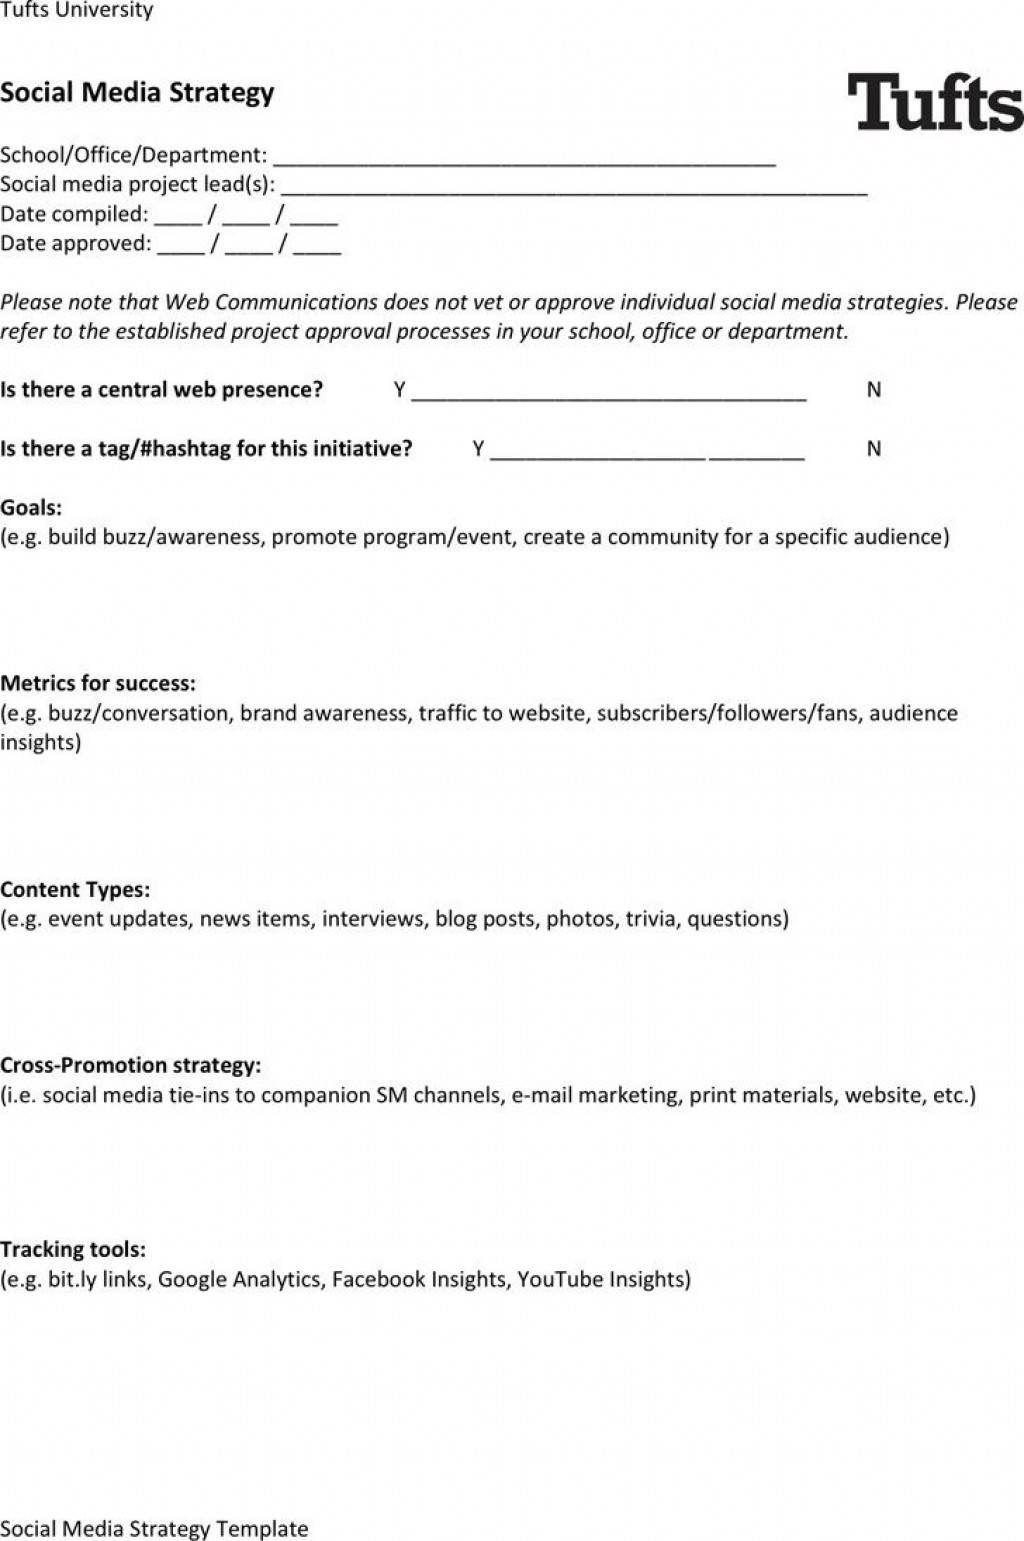 005 Outstanding Social Media Strategy Template Pdf Example  Sample ContentLarge